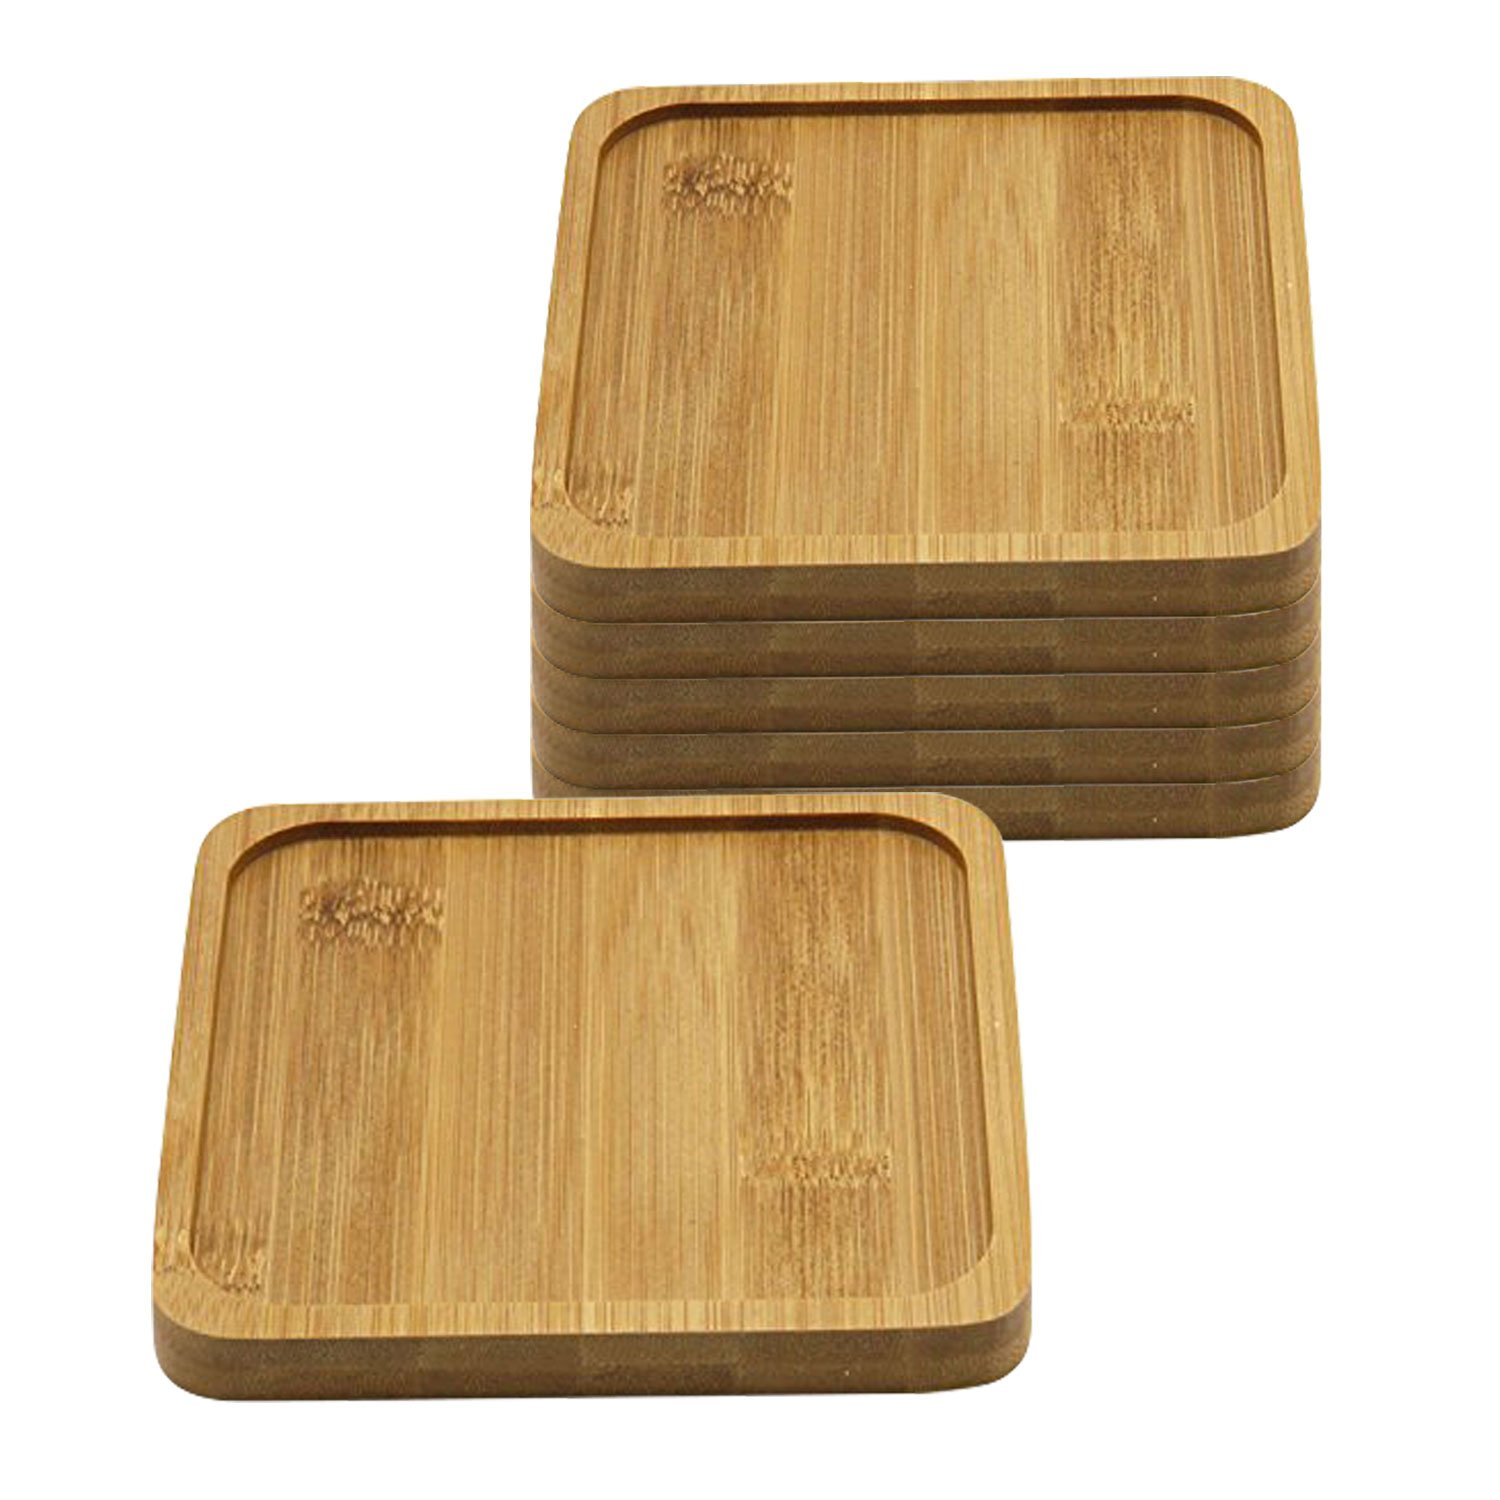 T4U 5 Inch Bamboo Square Bamboo Tray Sandy Beige Set of 6 by T4U